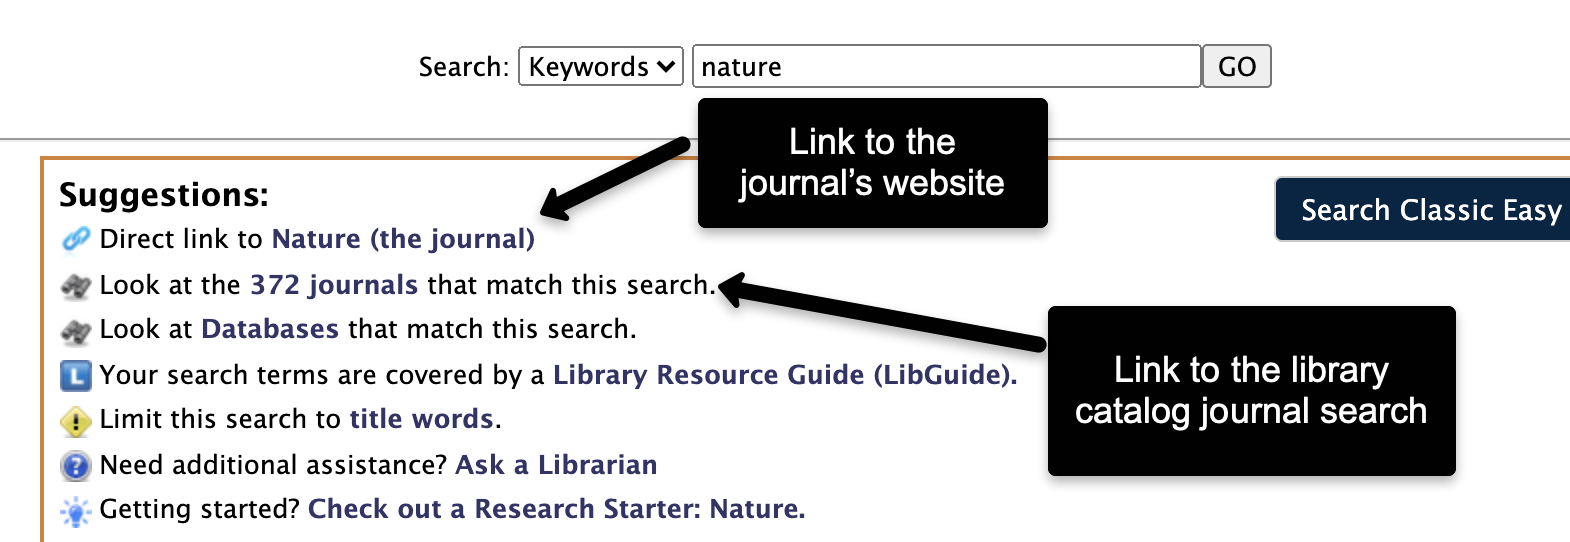 image showing direct link to journal website (first link) and link to journal title search in the catalog (second link)